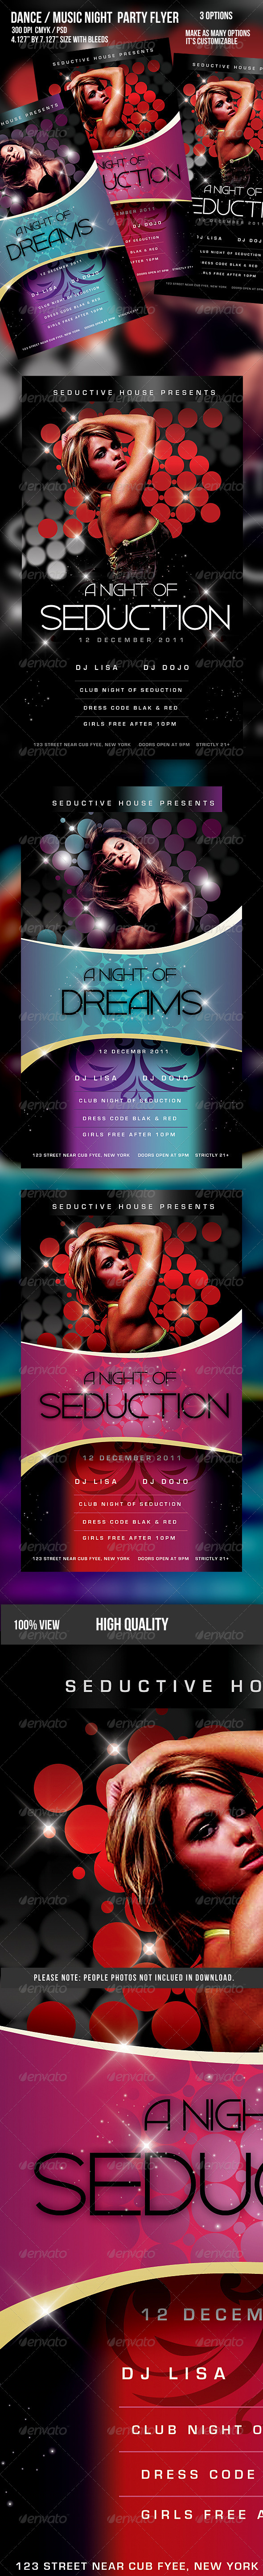 Music/Dance Night Seduction Party Flyer - Clubs & Parties Events